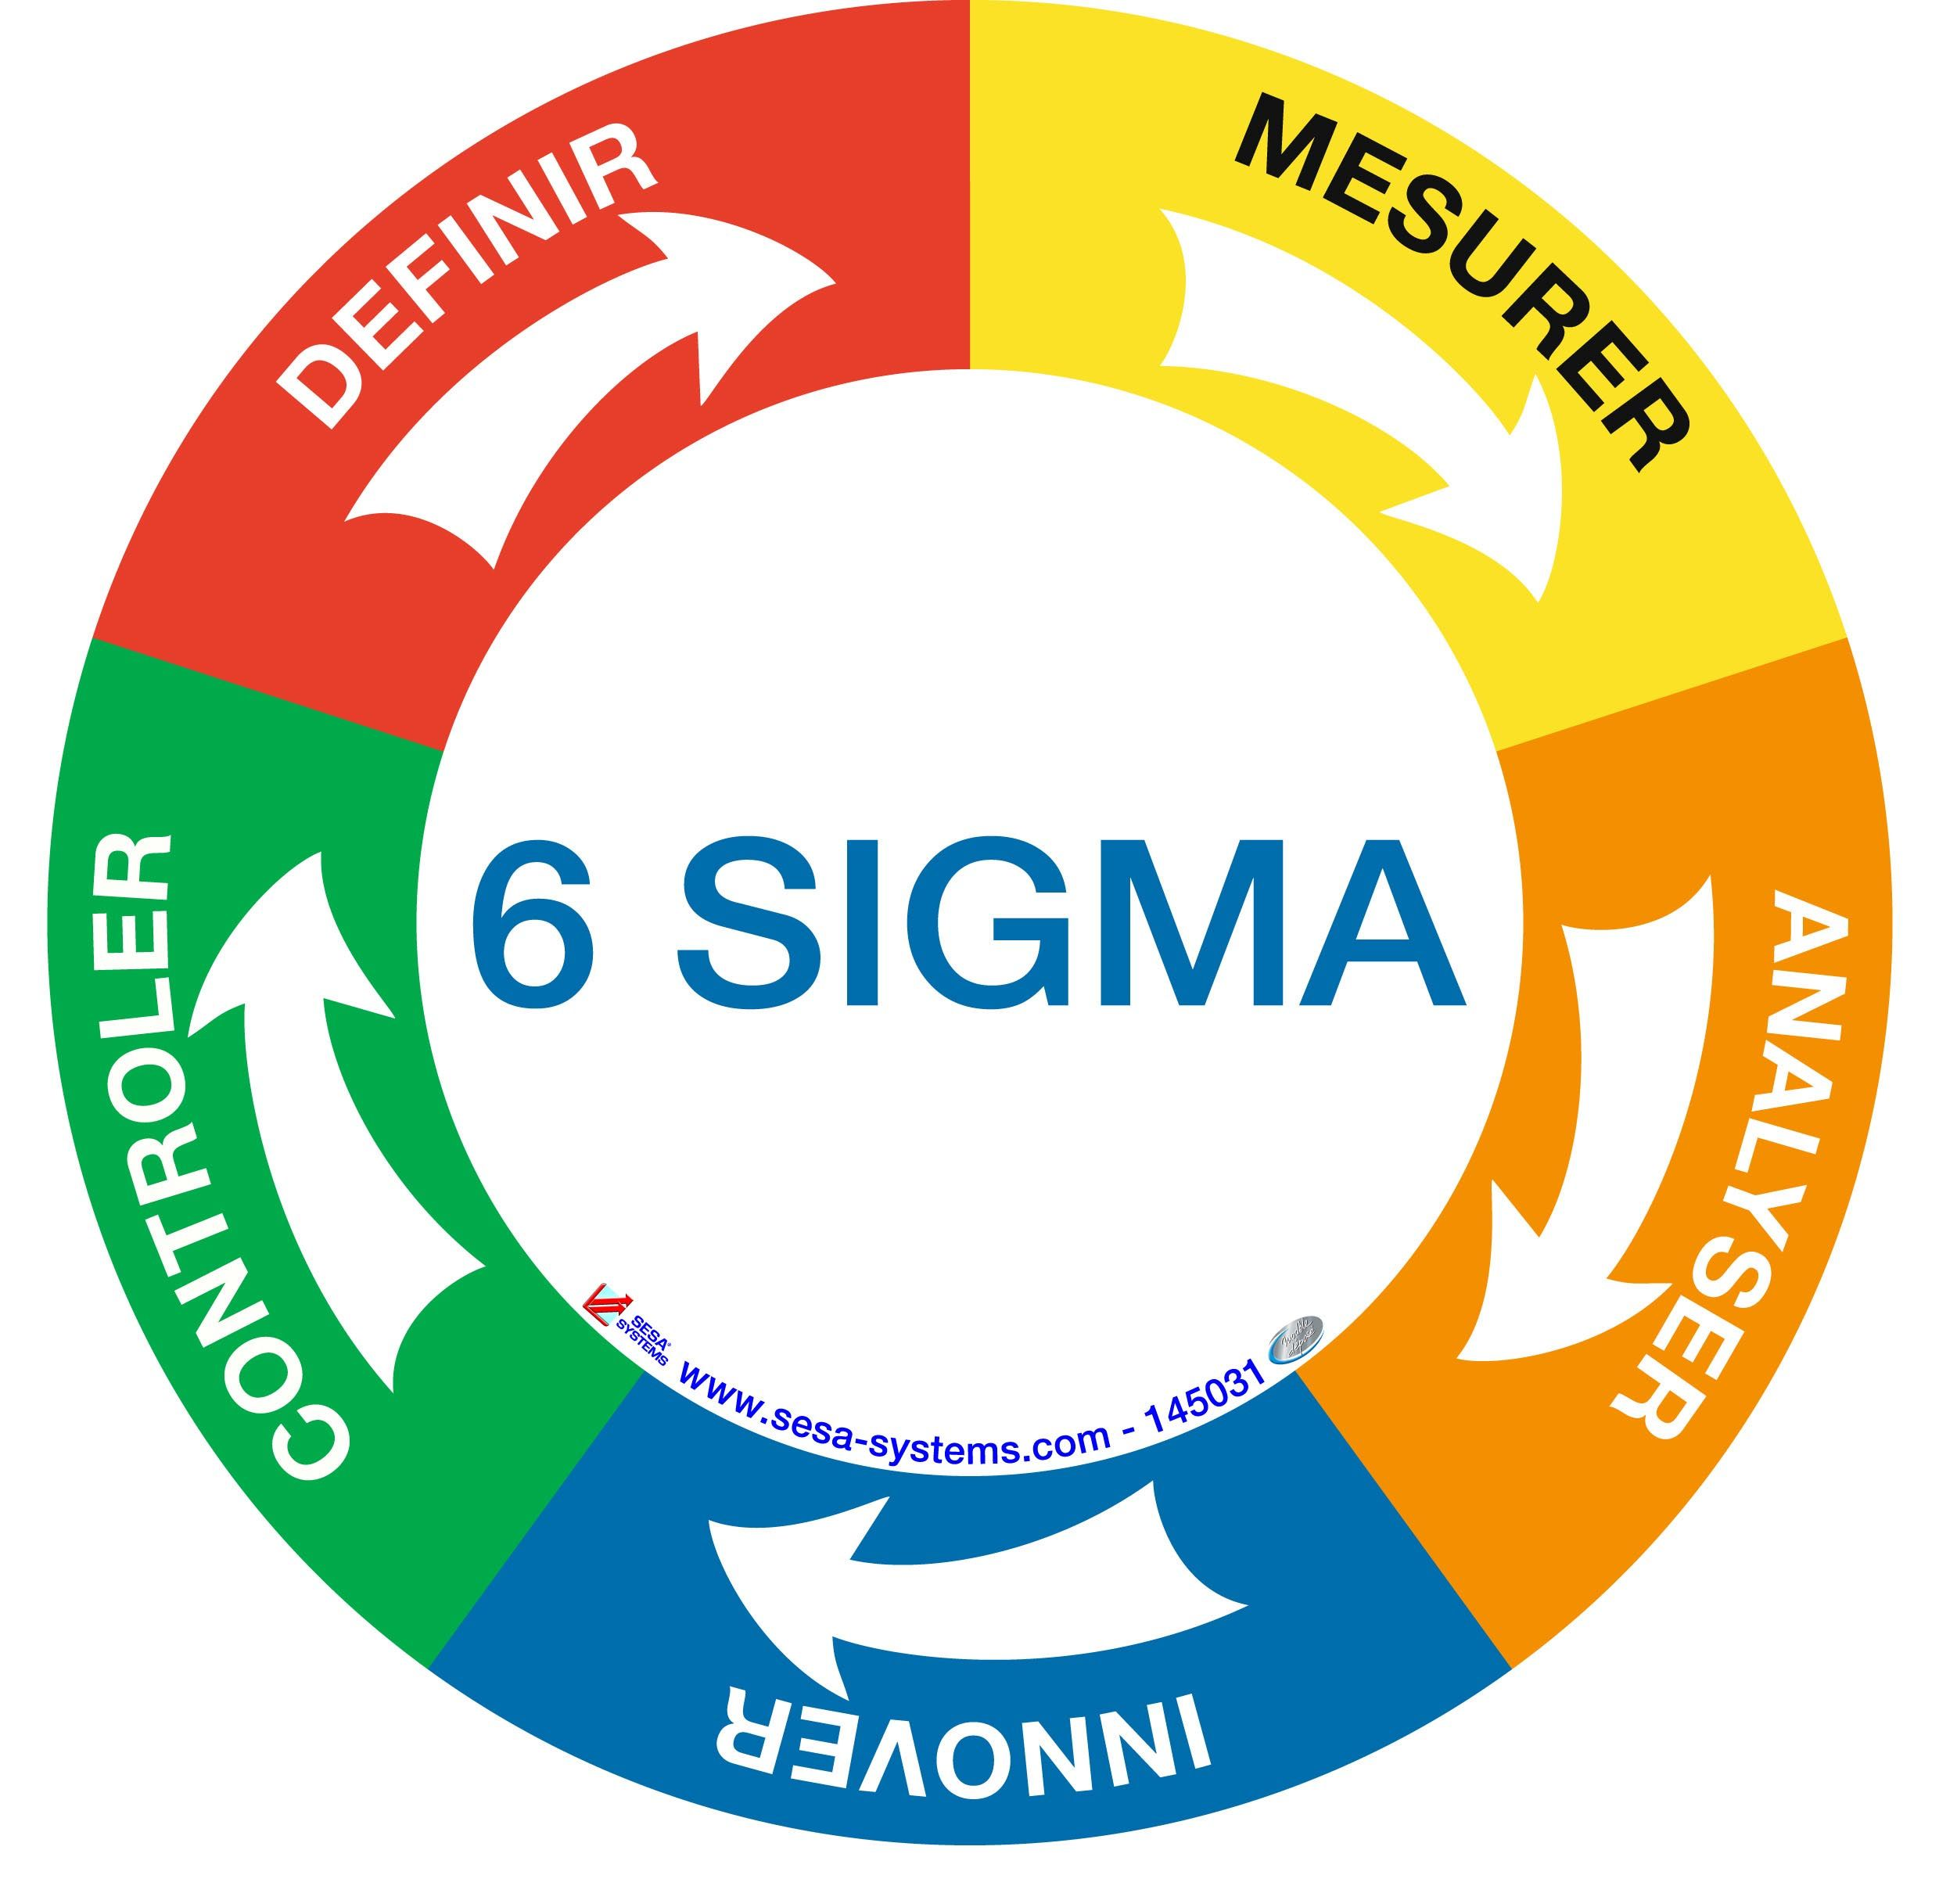 Building six sigma excellence case study of general electric